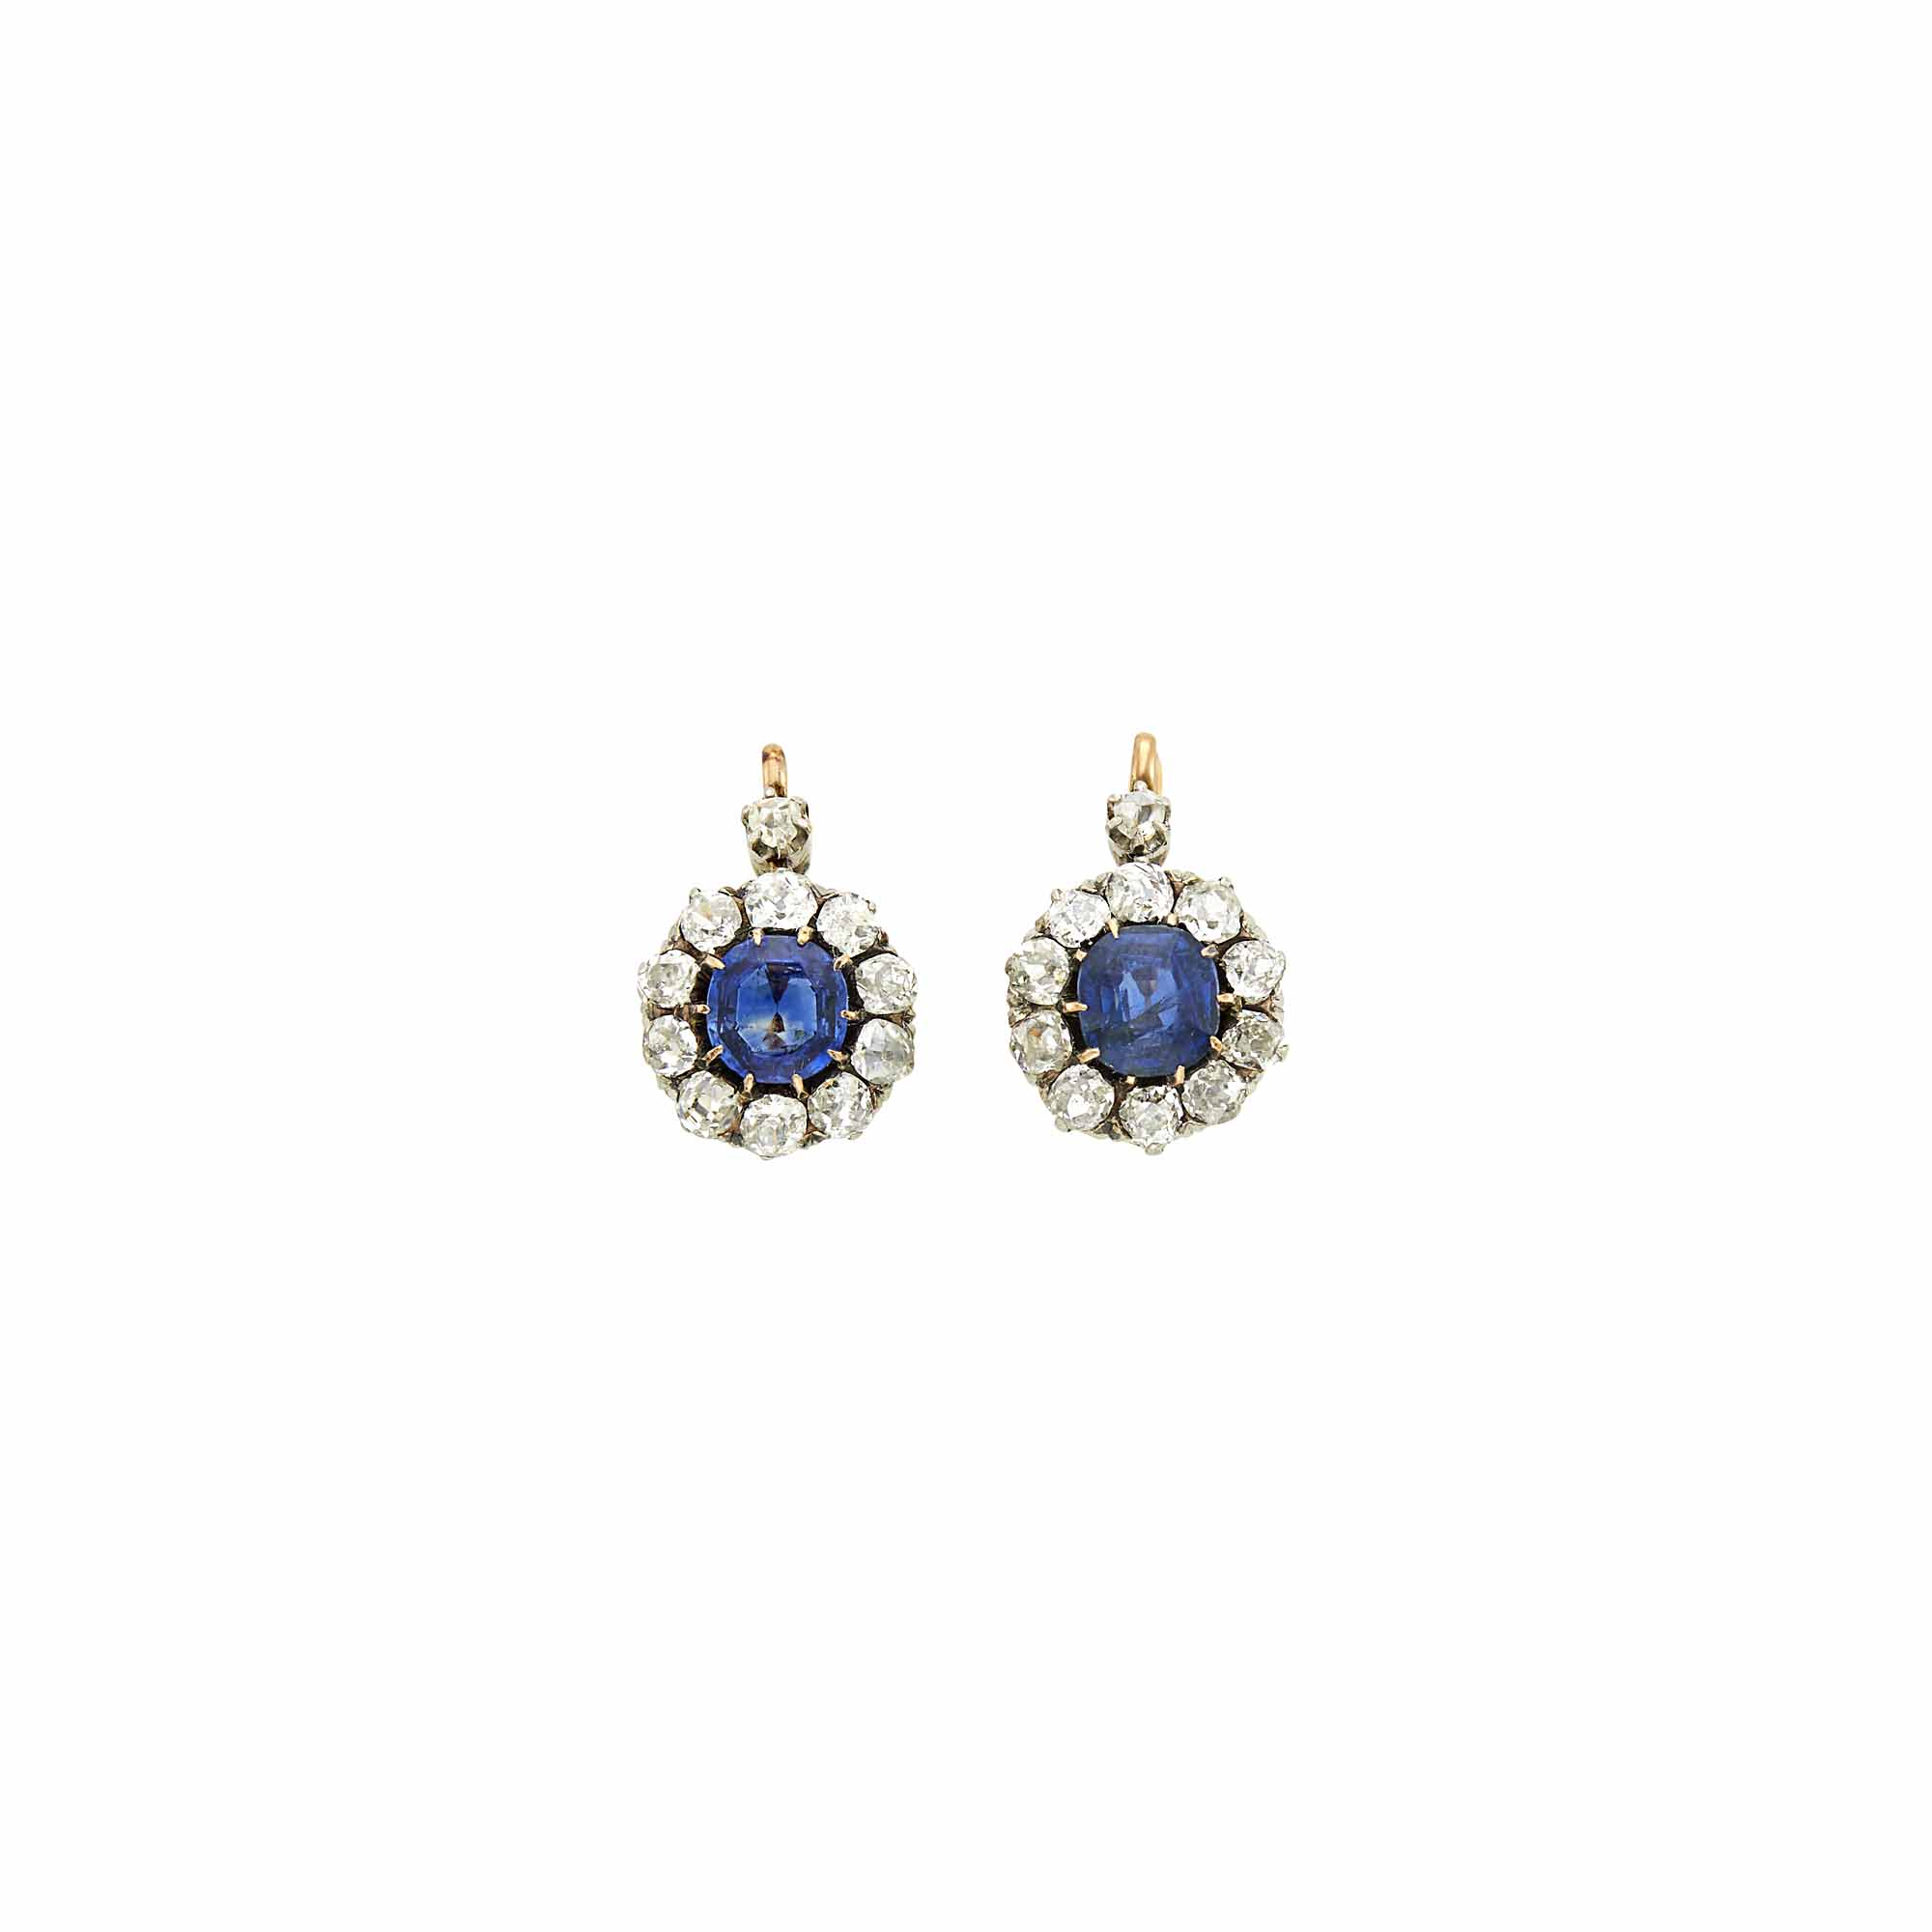 Lot image - Pair of Antique Gold, Platinum, Sapphire and Diamond Earrings, France